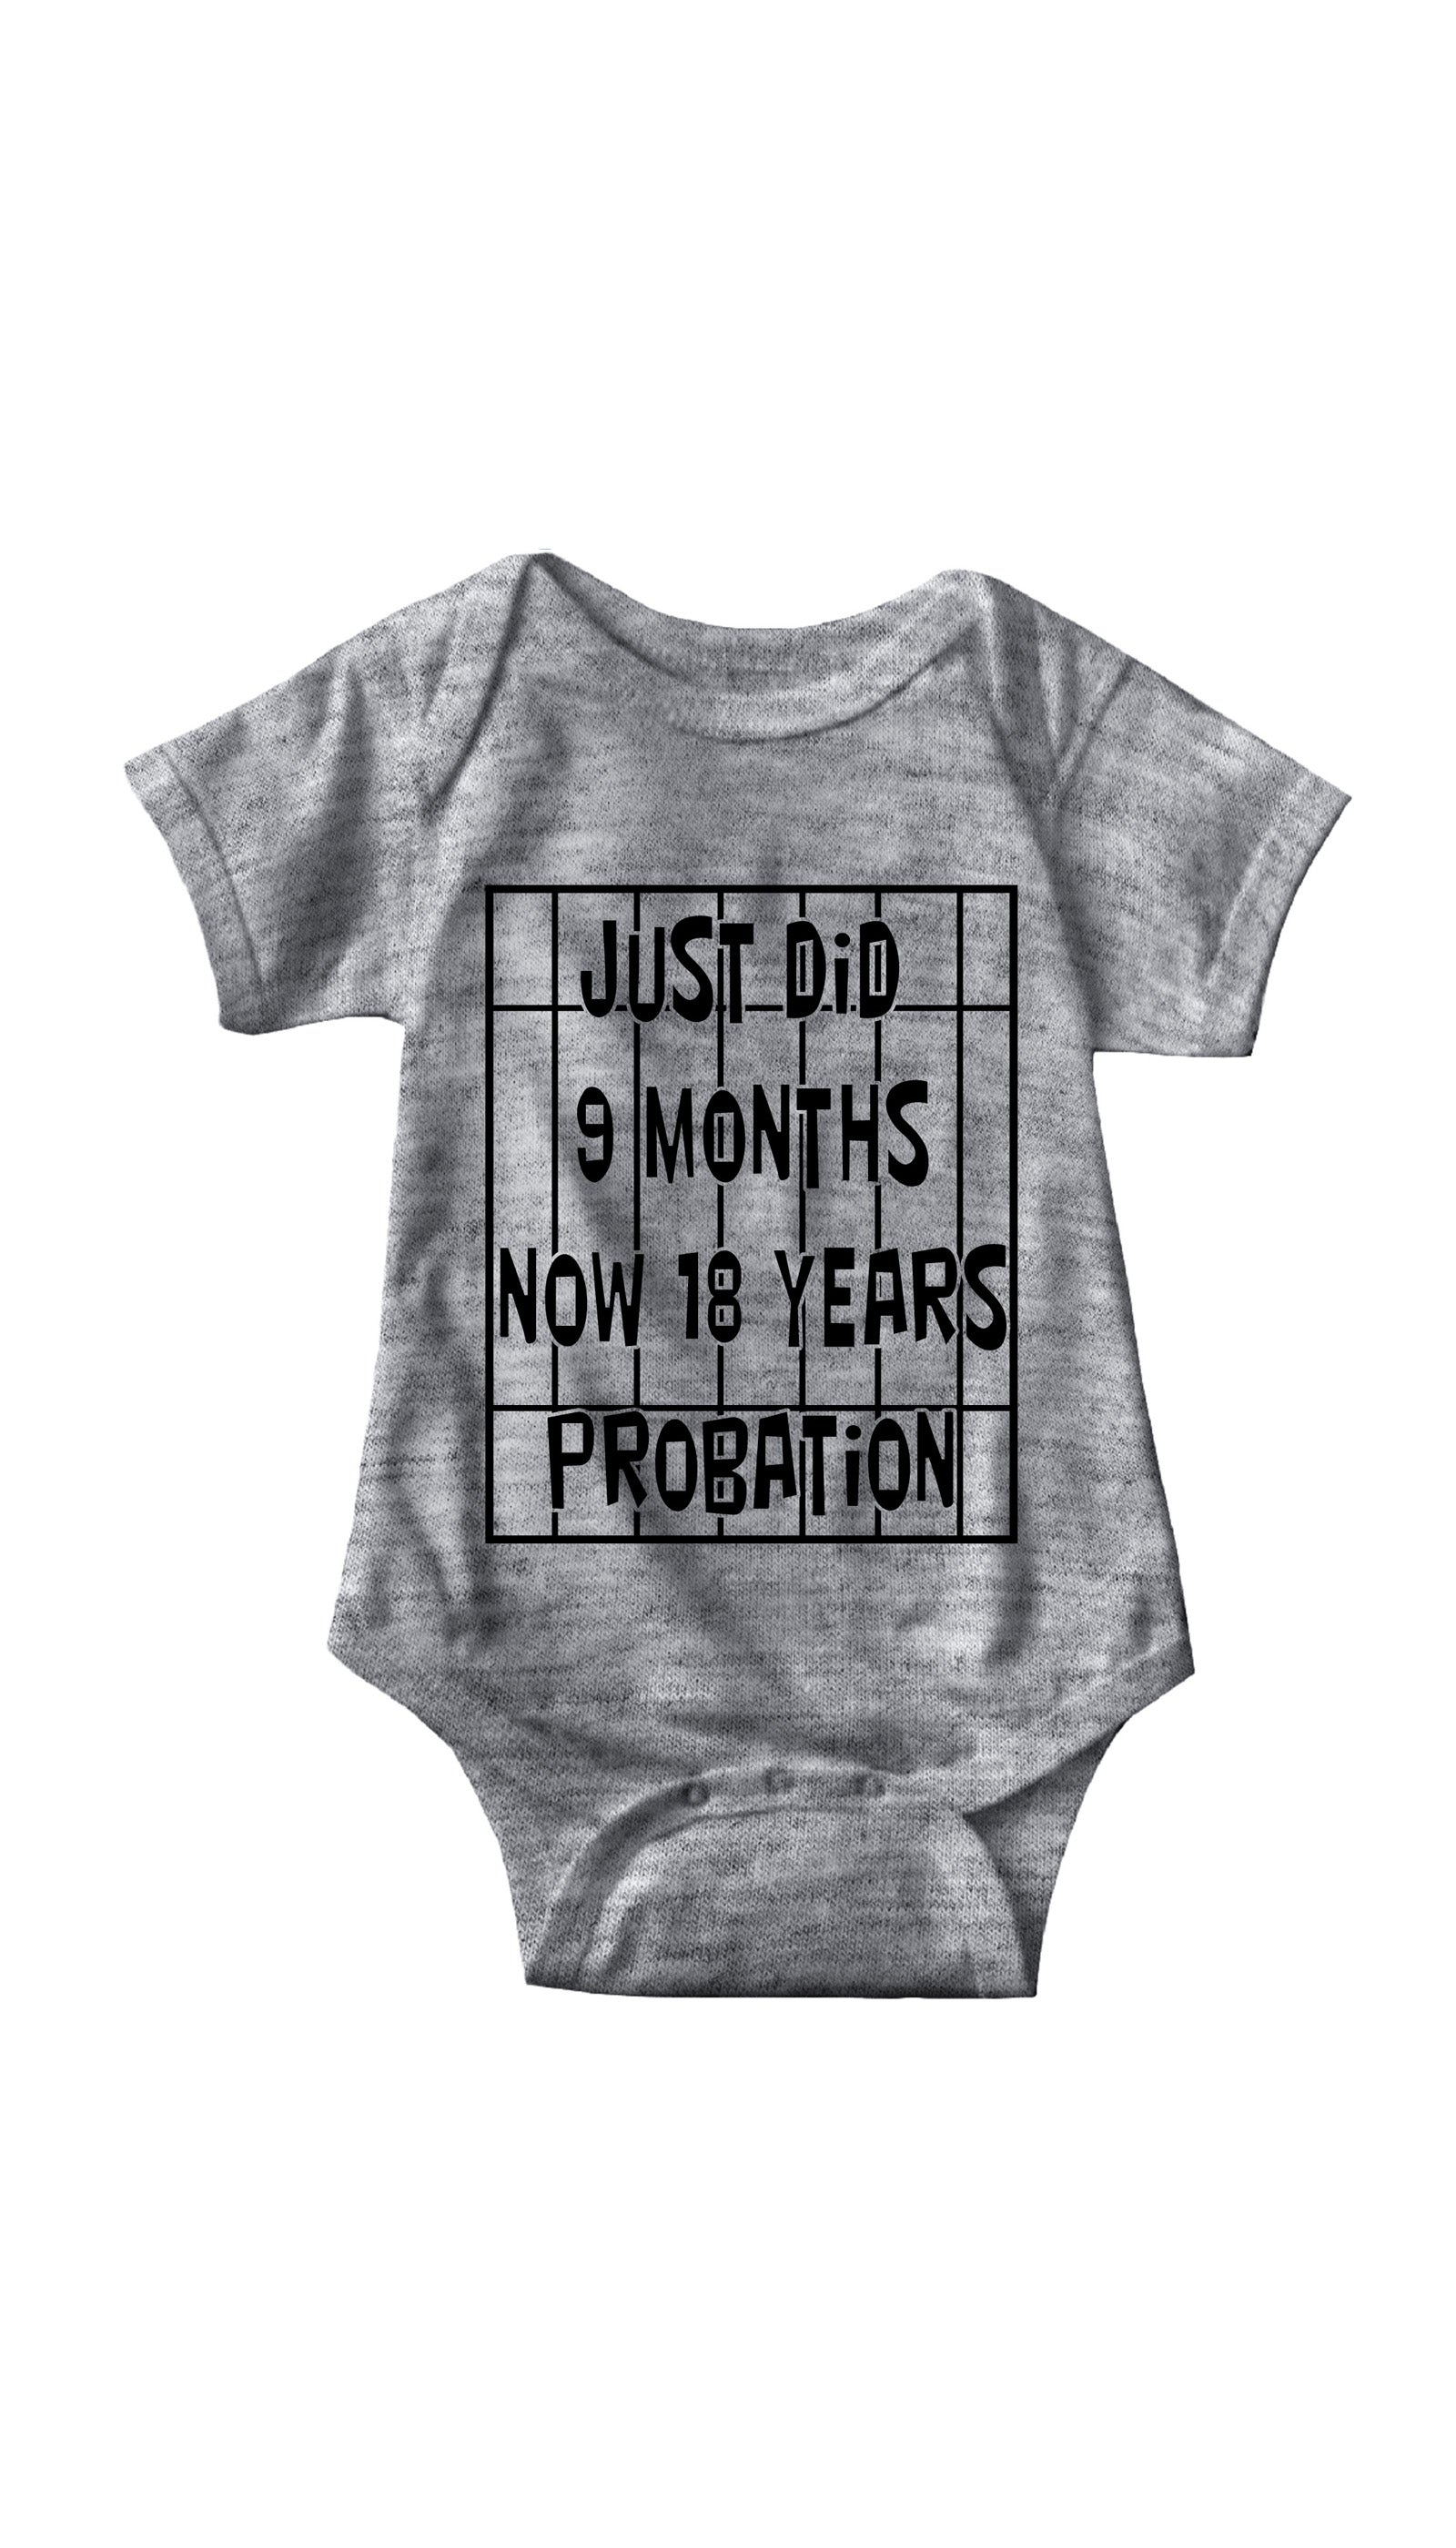 Just Did 9 Months Now 18 Years Probation Gray Infant Onesie | Sarcastic ME